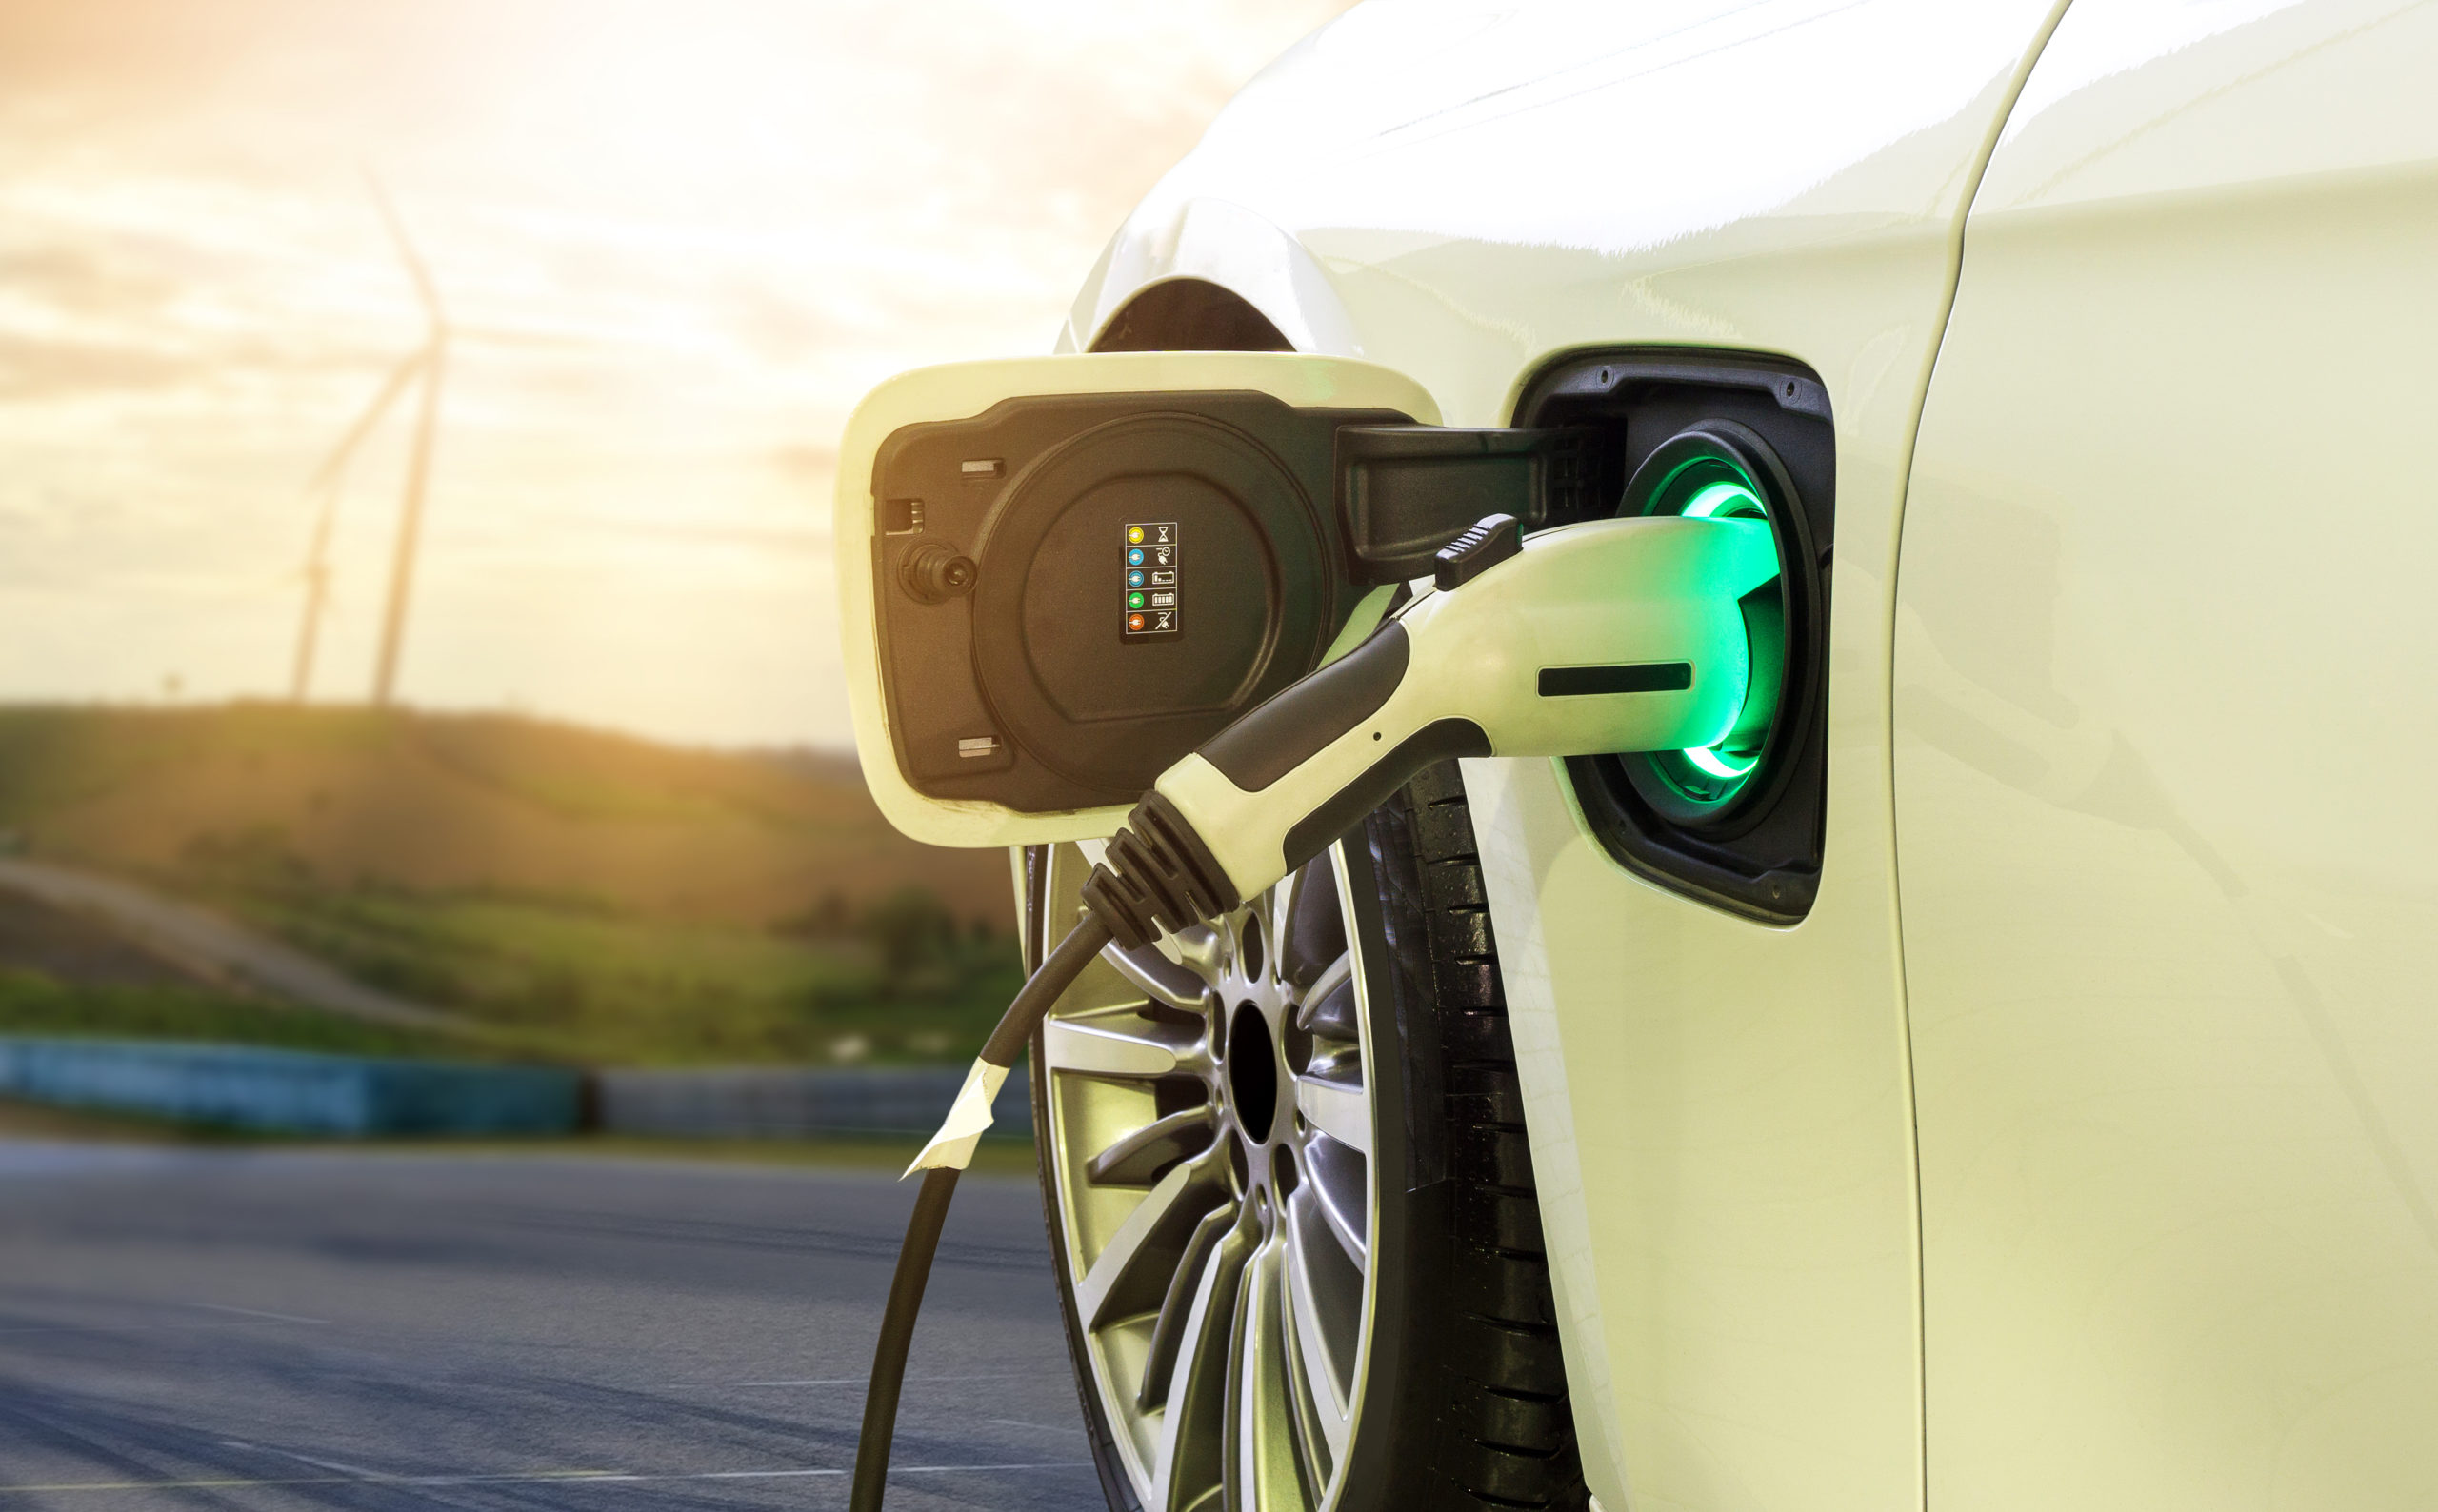 zero emissions electric vehicle being charged with wind turbines in the background